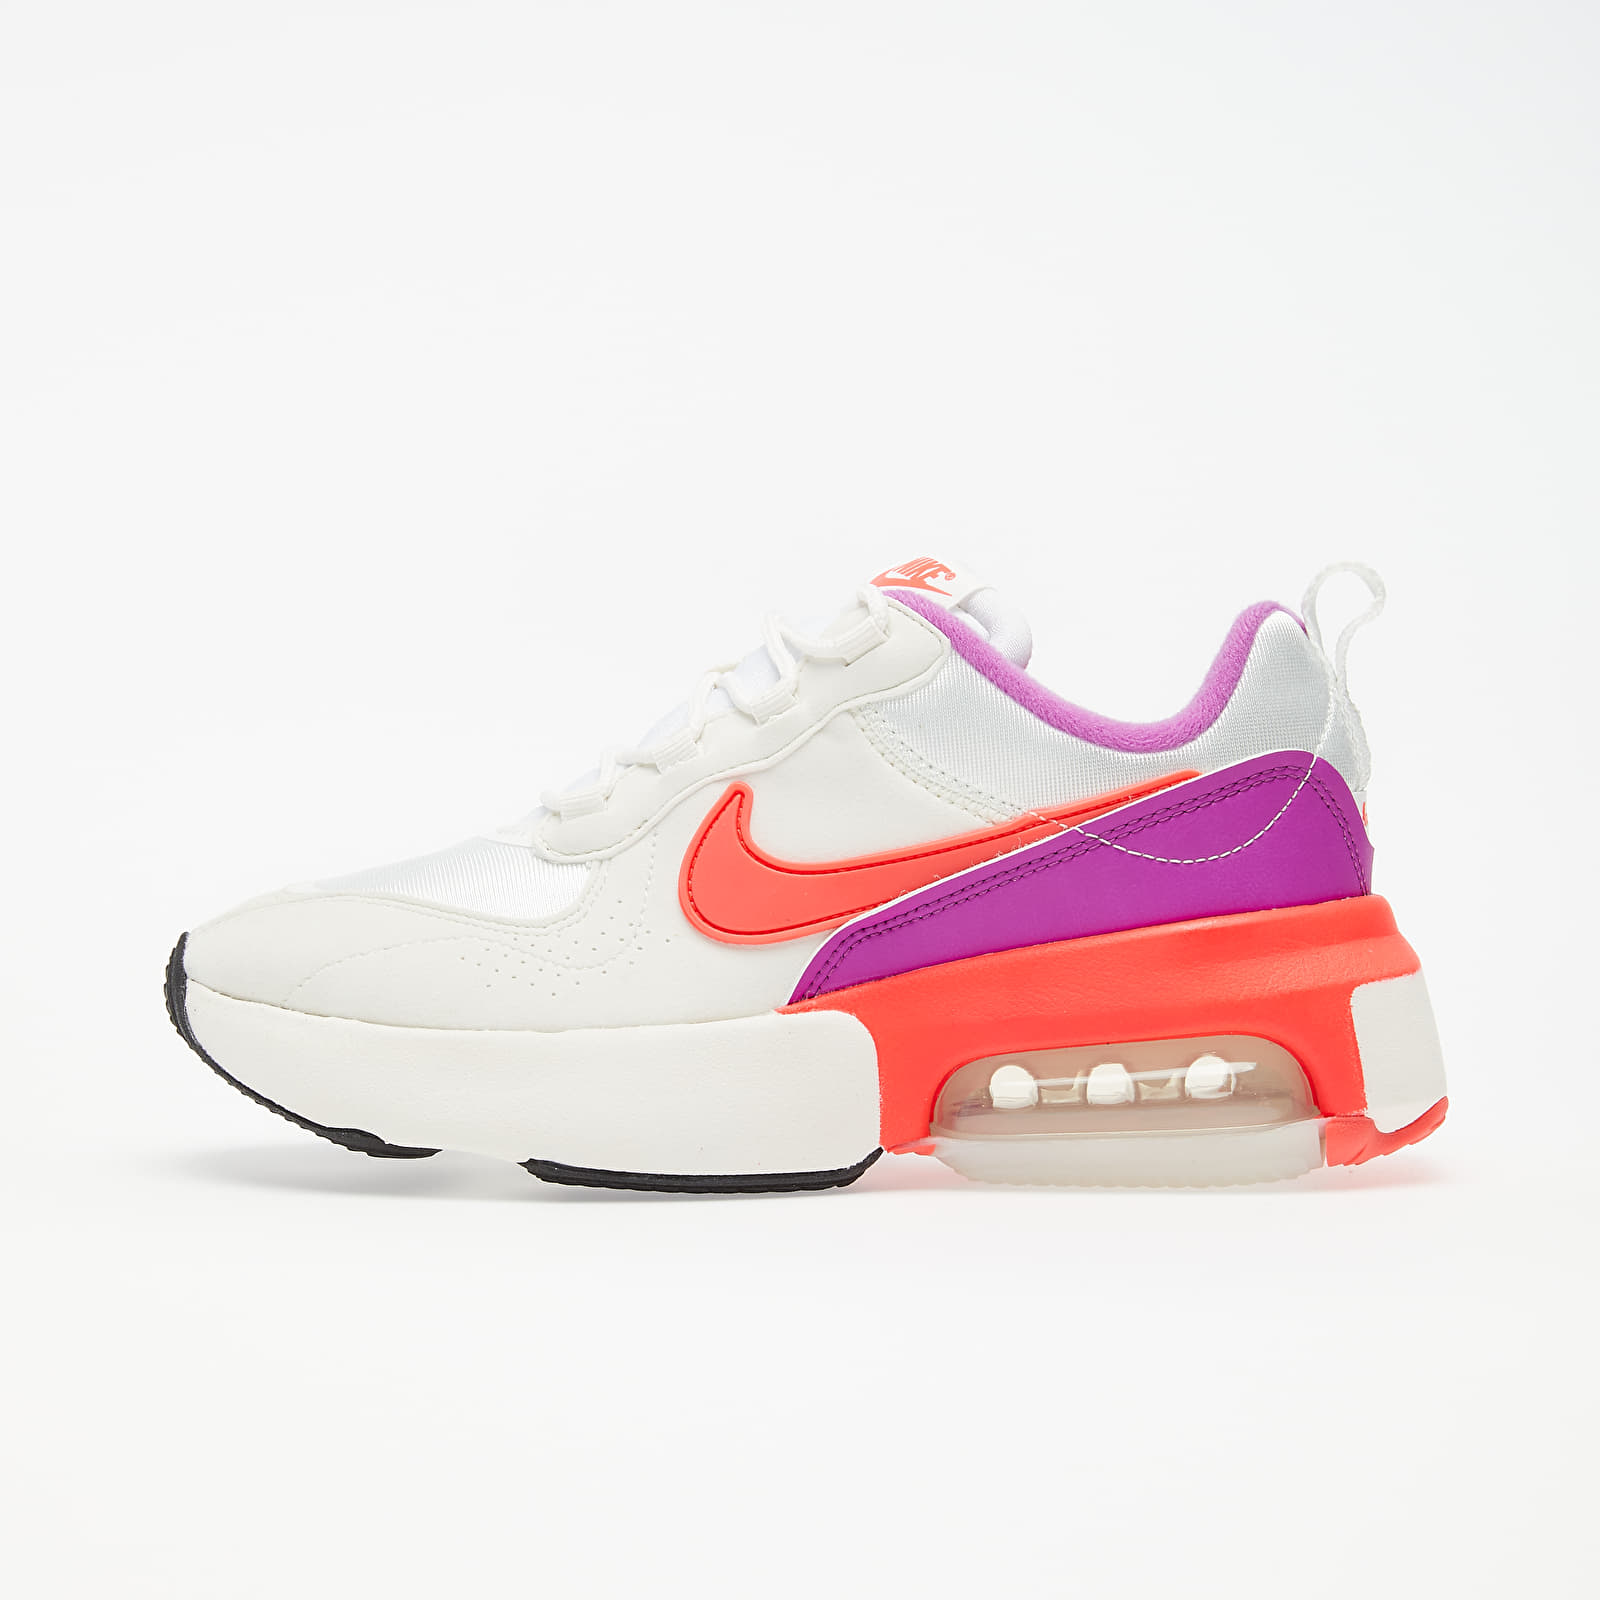 Chaussures et baskets femme Nike W Air Max Verona Summit White/ Laser Crimson-Sail-Magenta